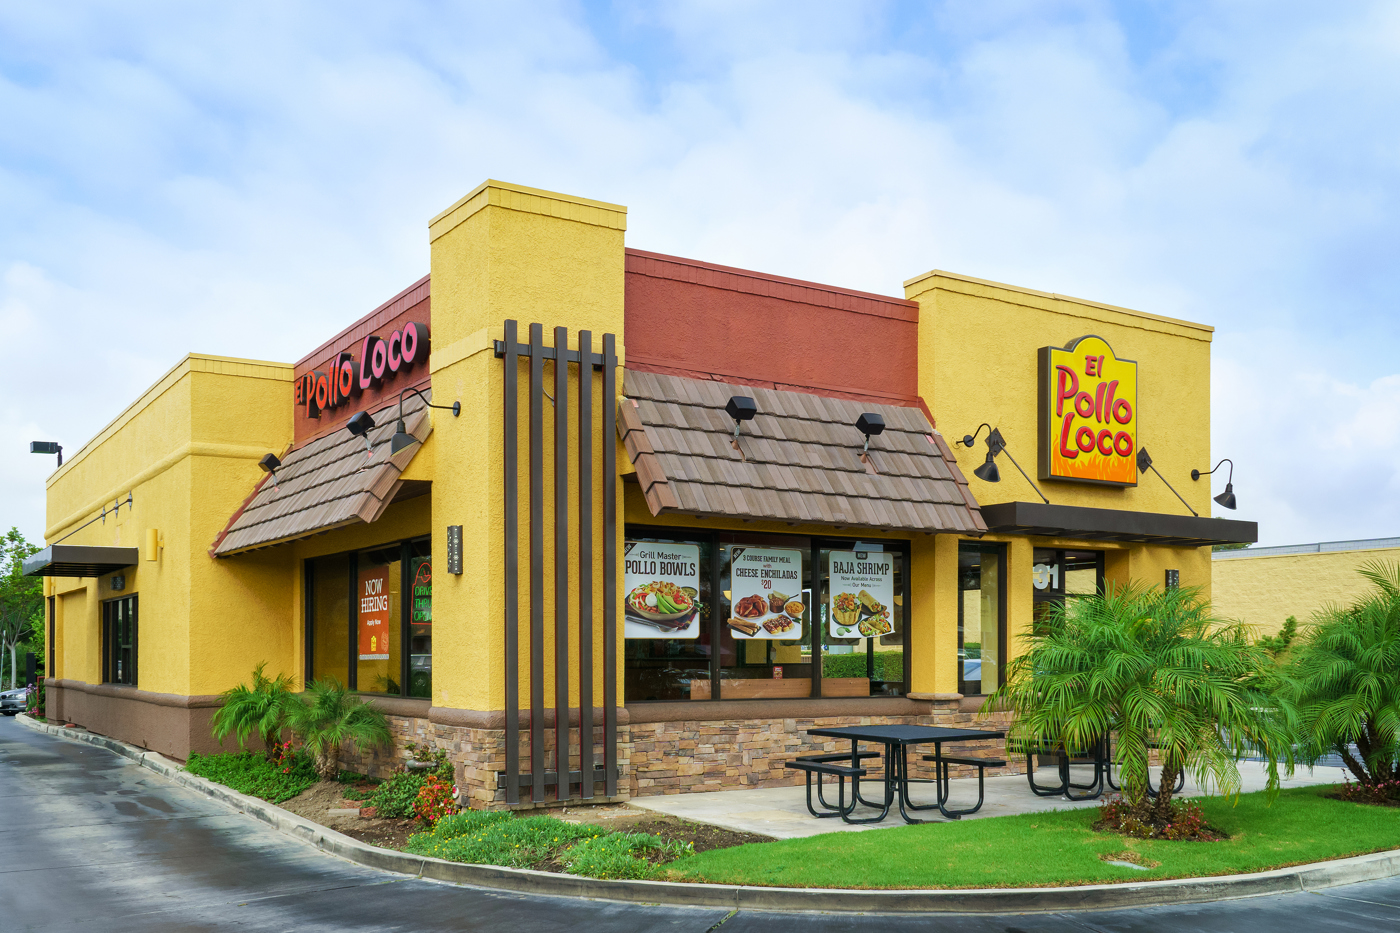 El Pollo Loco Lager, LOCO Lager, Restaurant Lager, Fast Food Lager